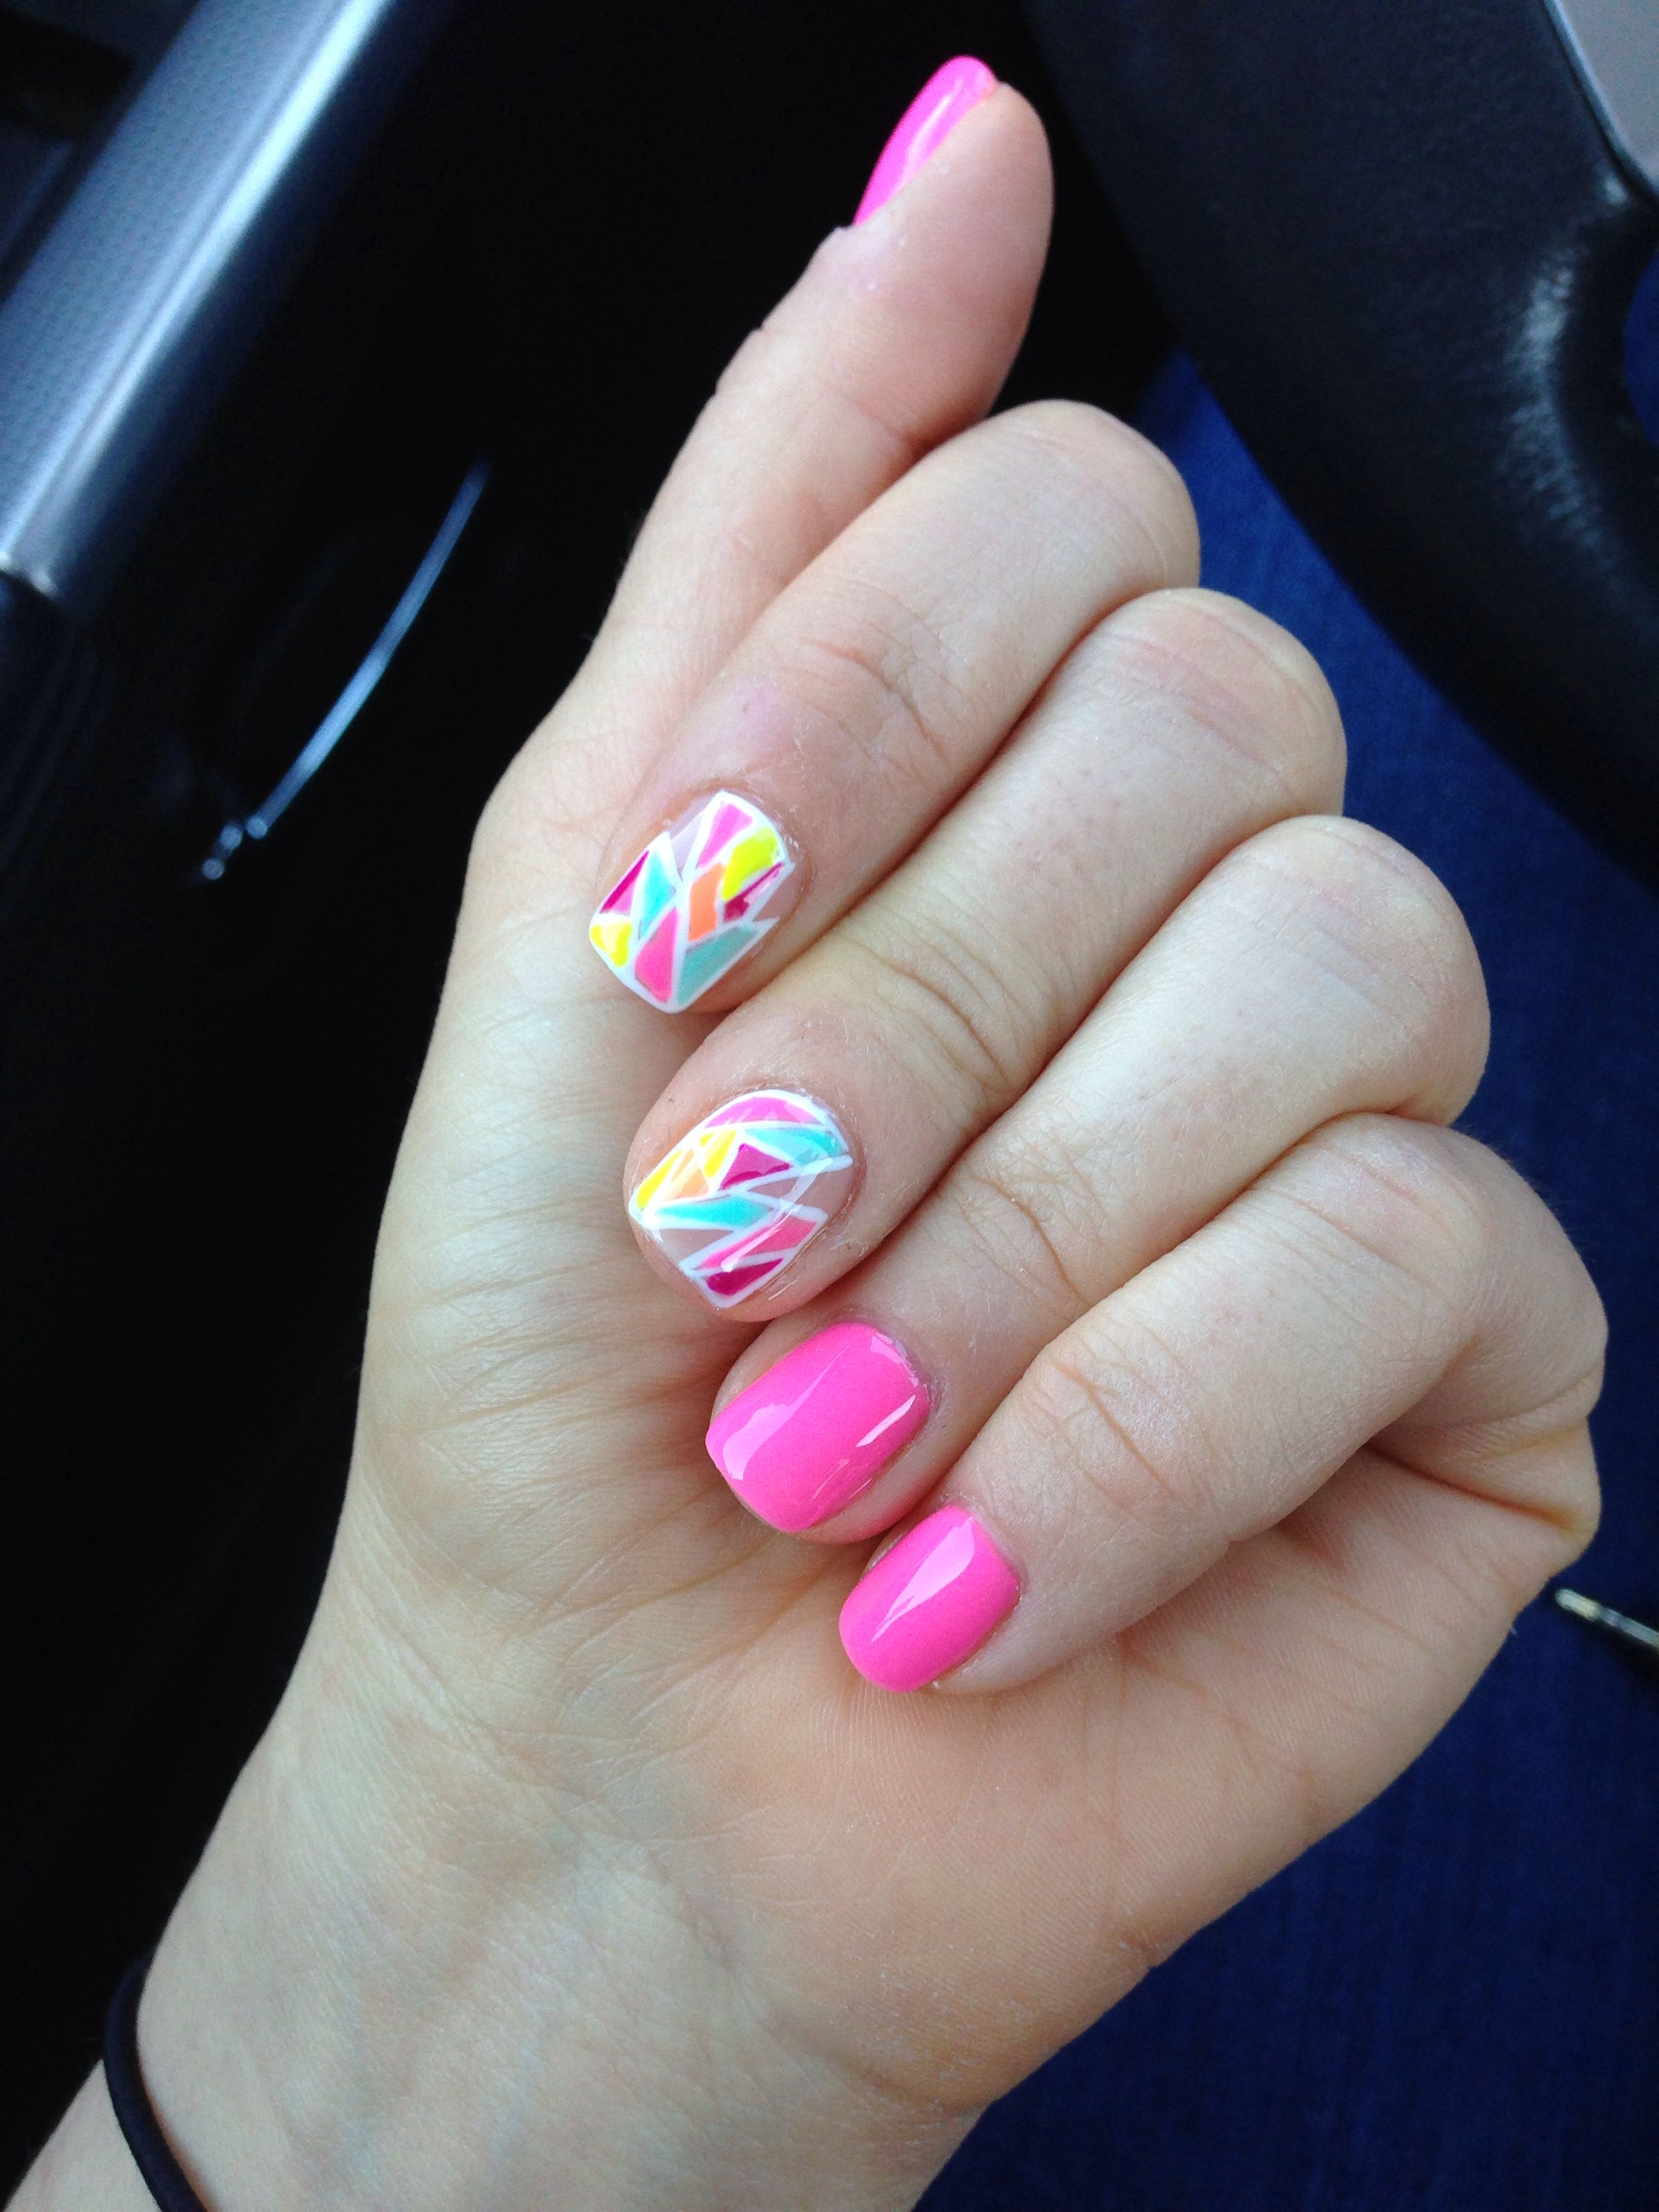 Mosaic Manicure from Diva Nails, Mineola, NY   Must Have Manicures ...